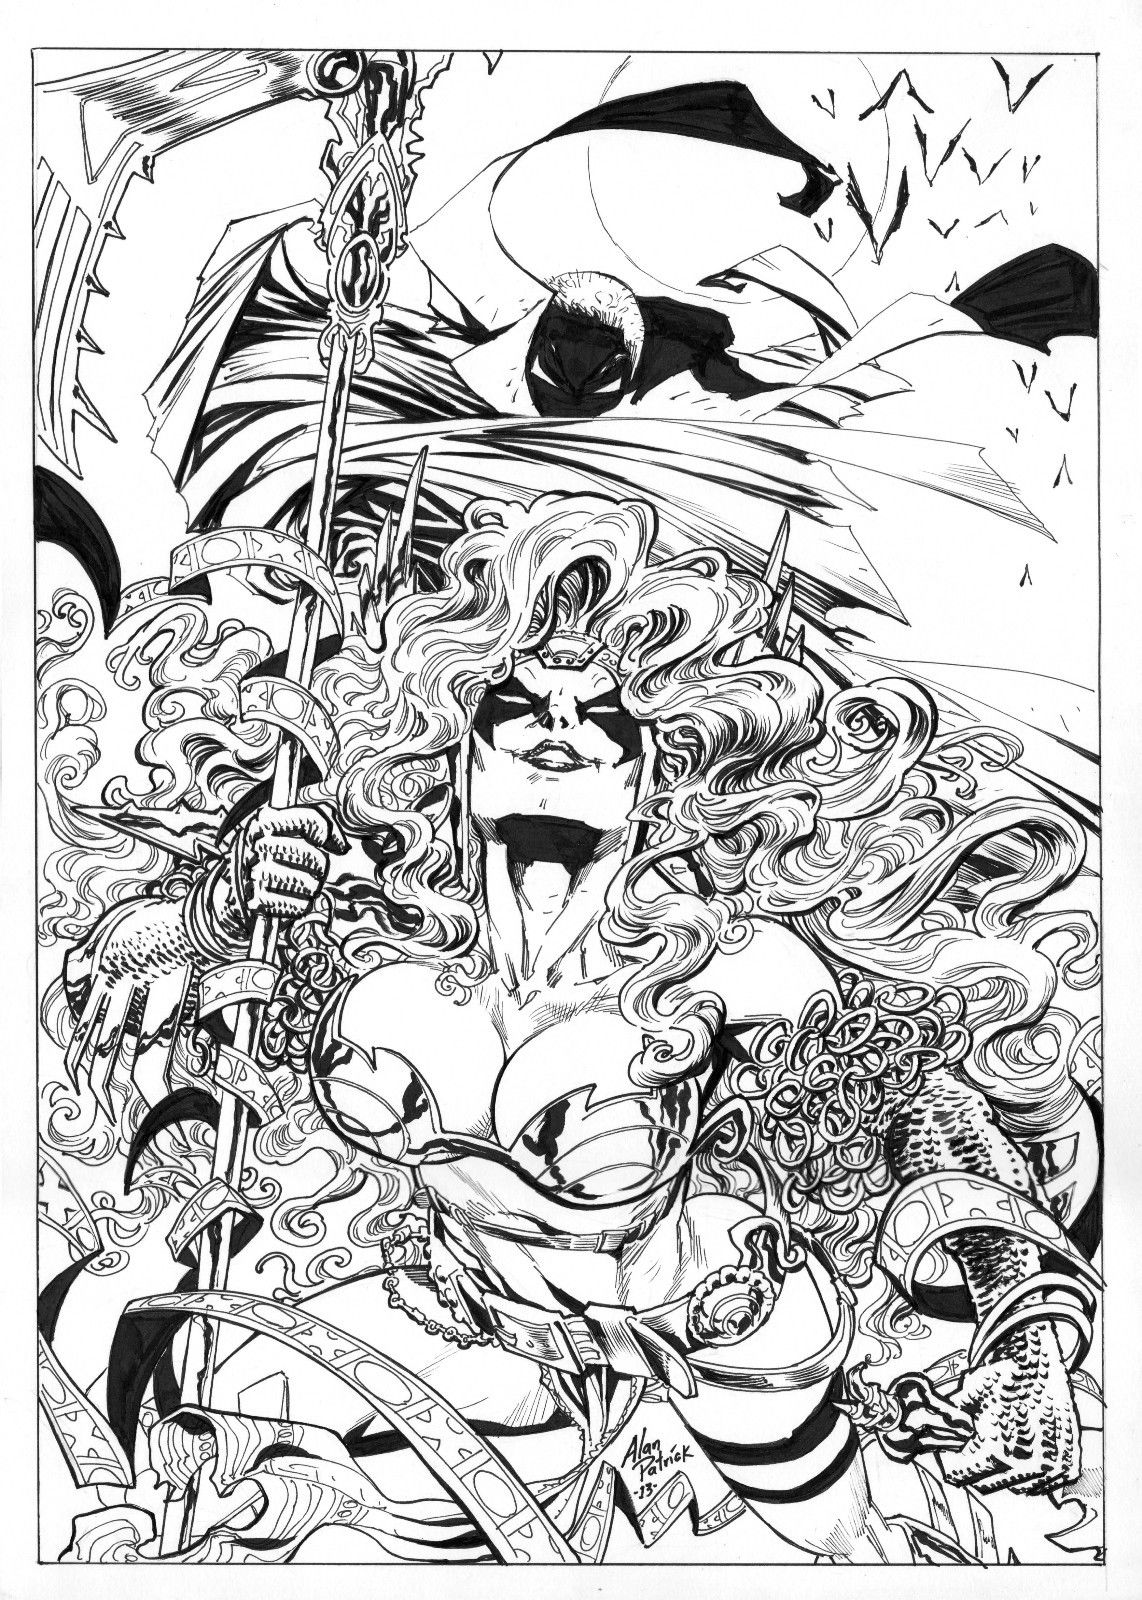 Originals for Spawn coloring pages